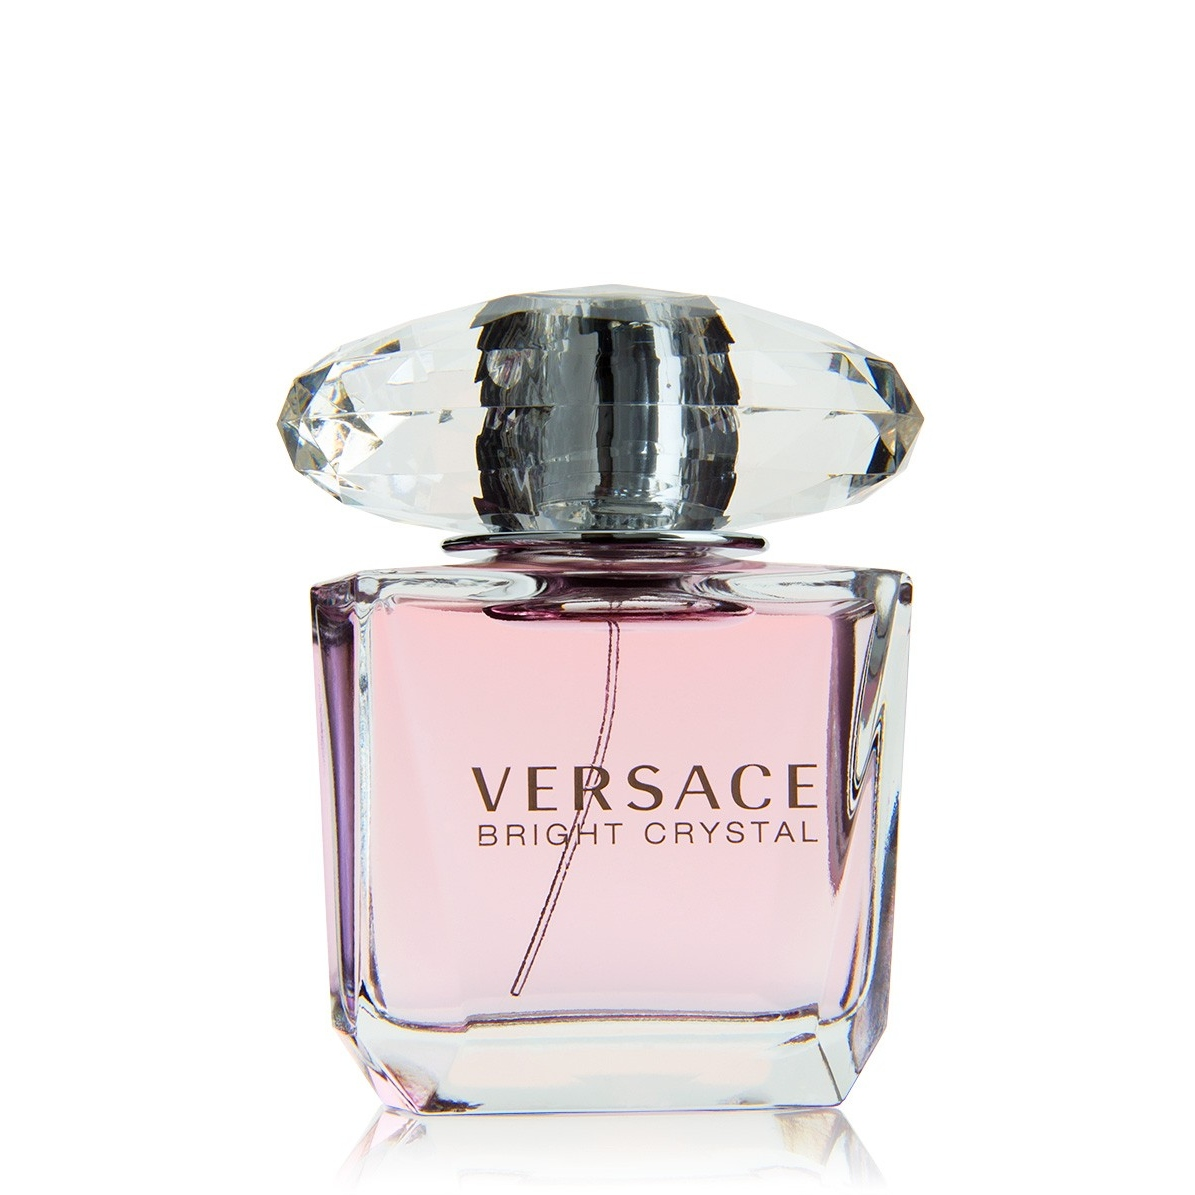 Versace Bright Crystal eau de toilette spray 30 ml